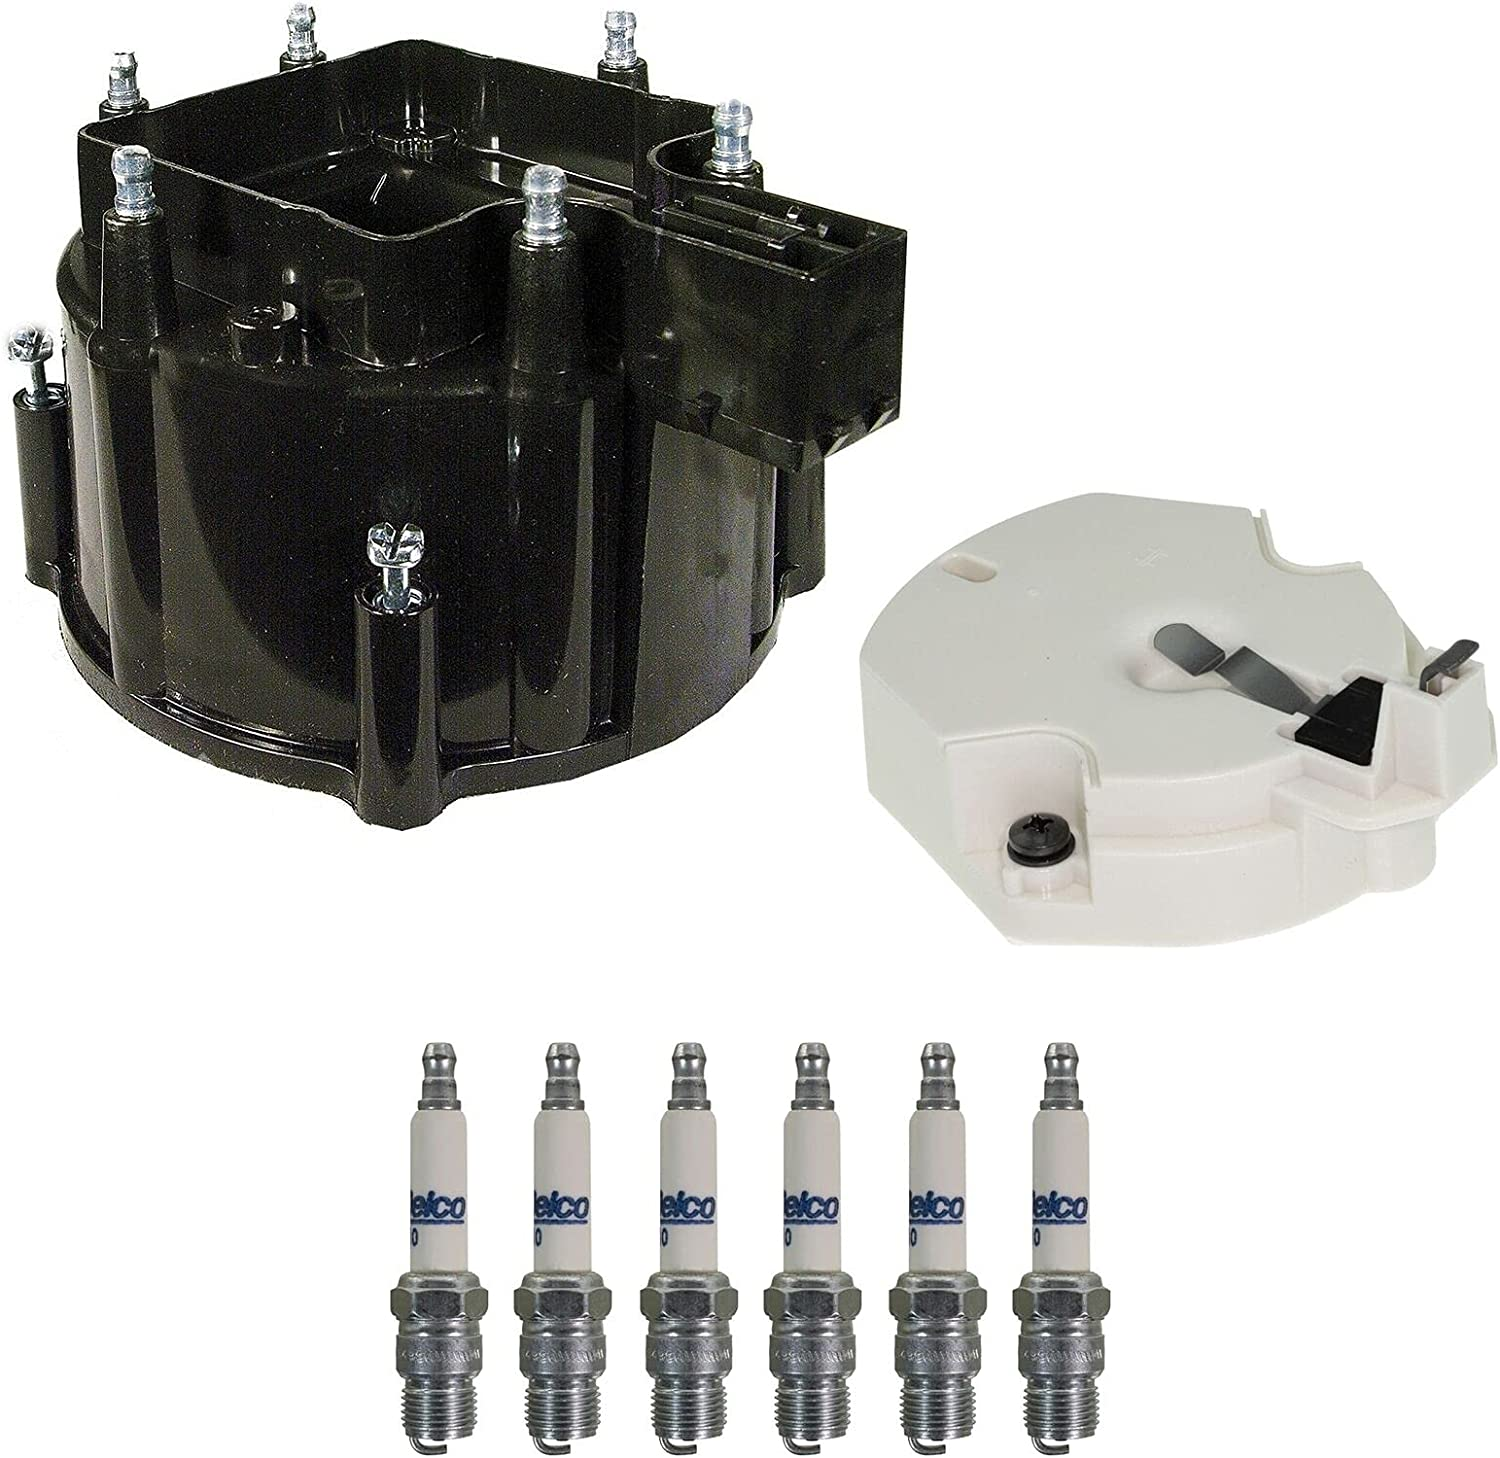 Distributor Rotor Cap Spark Plugs Popular brand Compatible with G1 Brand new Chevy Kit